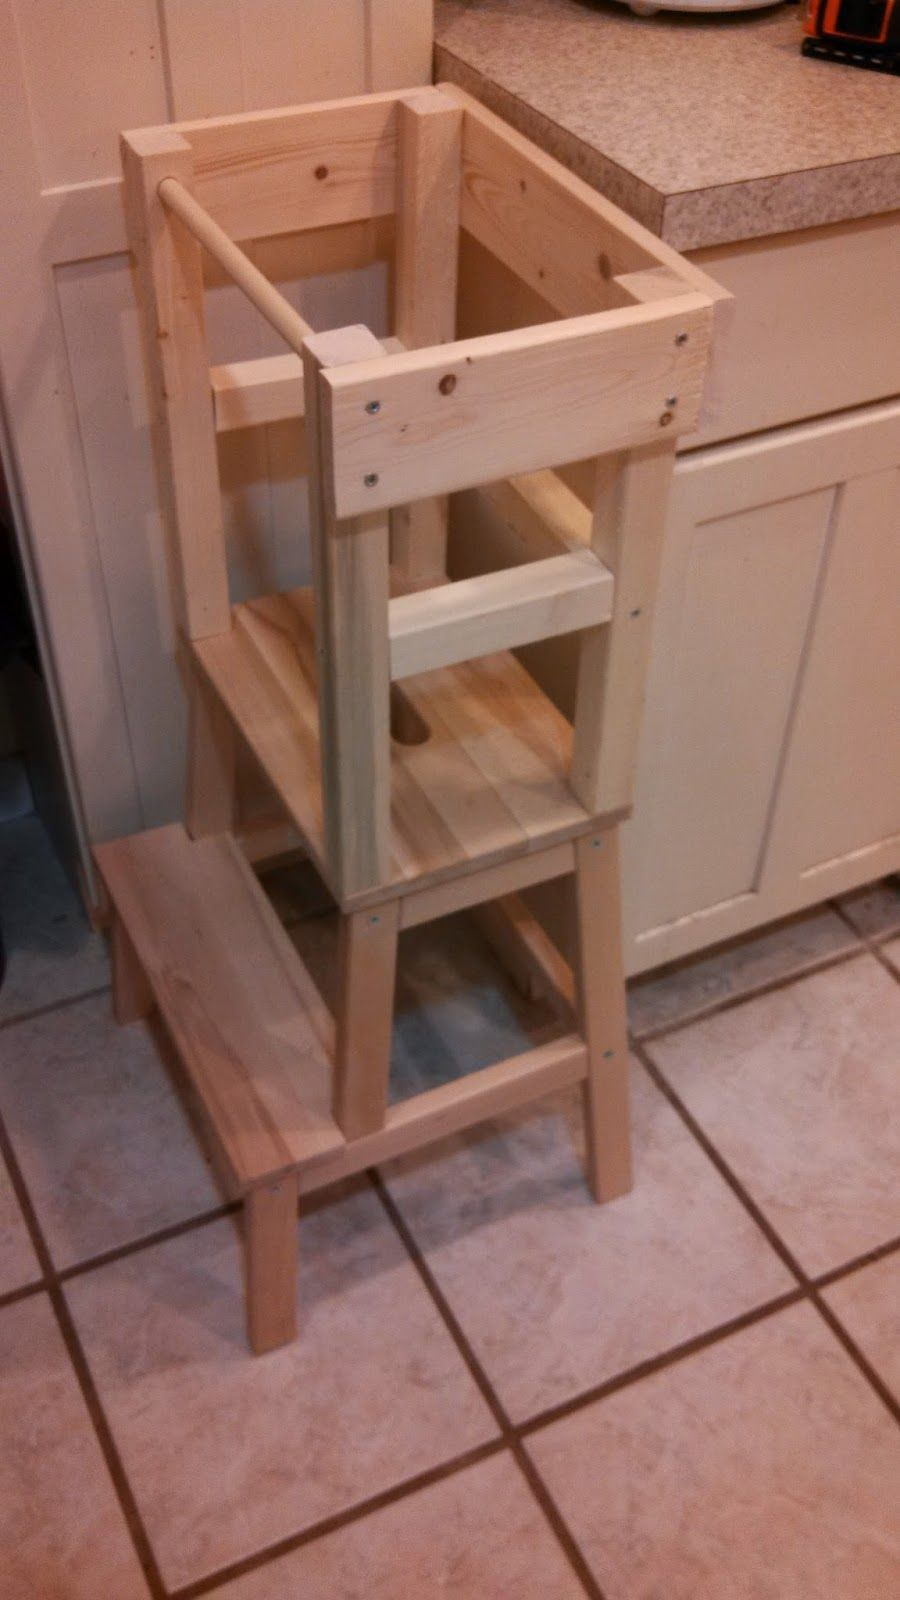 DIY Learning Tower WITH MATERIALS LIST!! Learning tower